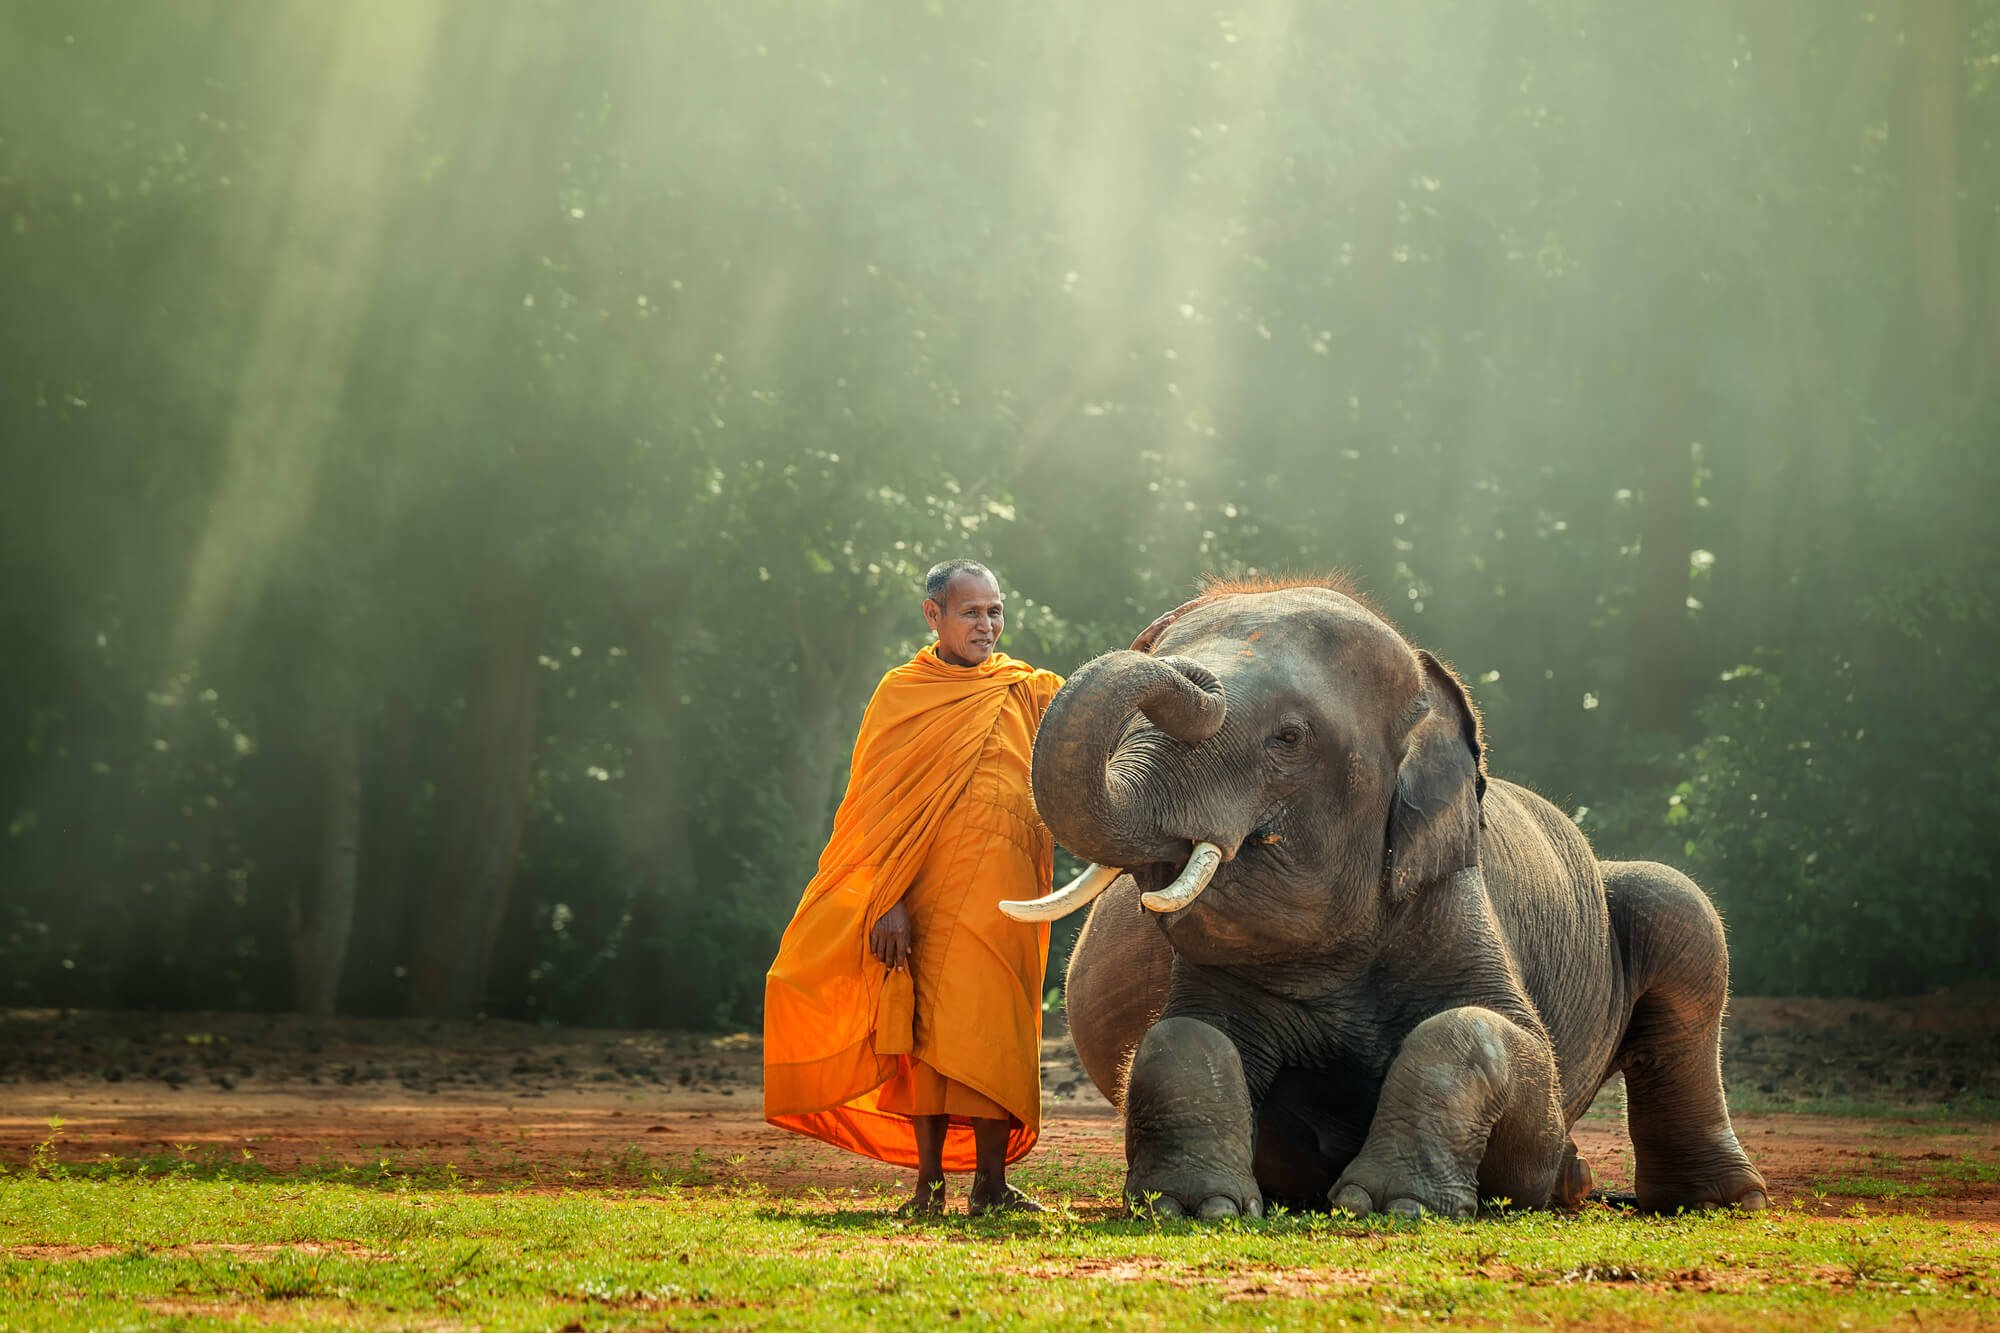 Monk at an elephant sanctuary in Thailand patting a baby